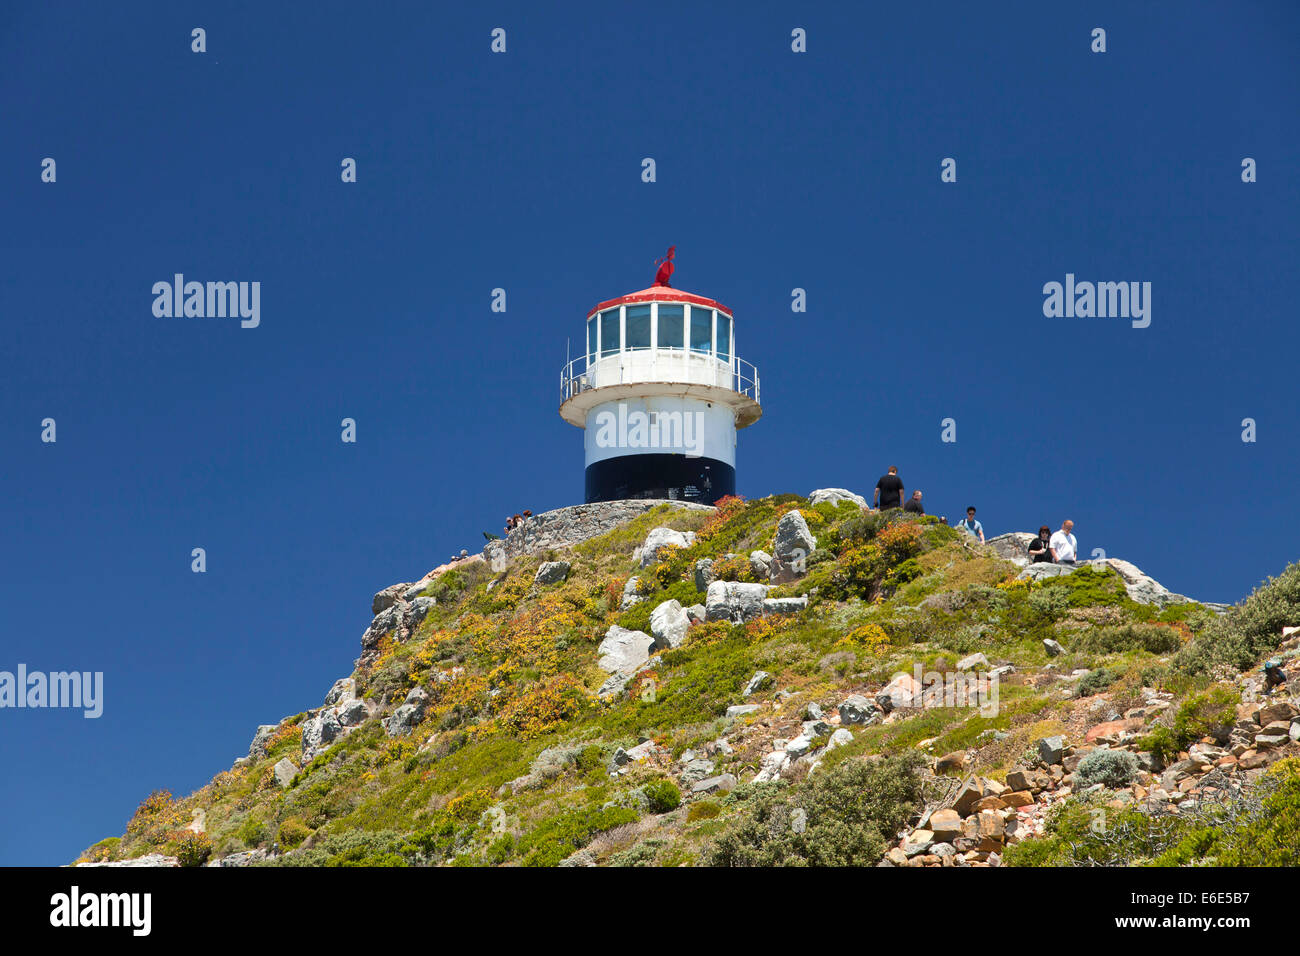 Lighthouse at the Cape of Good Hope, Cape Town, Western Cape, South Africa - Stock Image